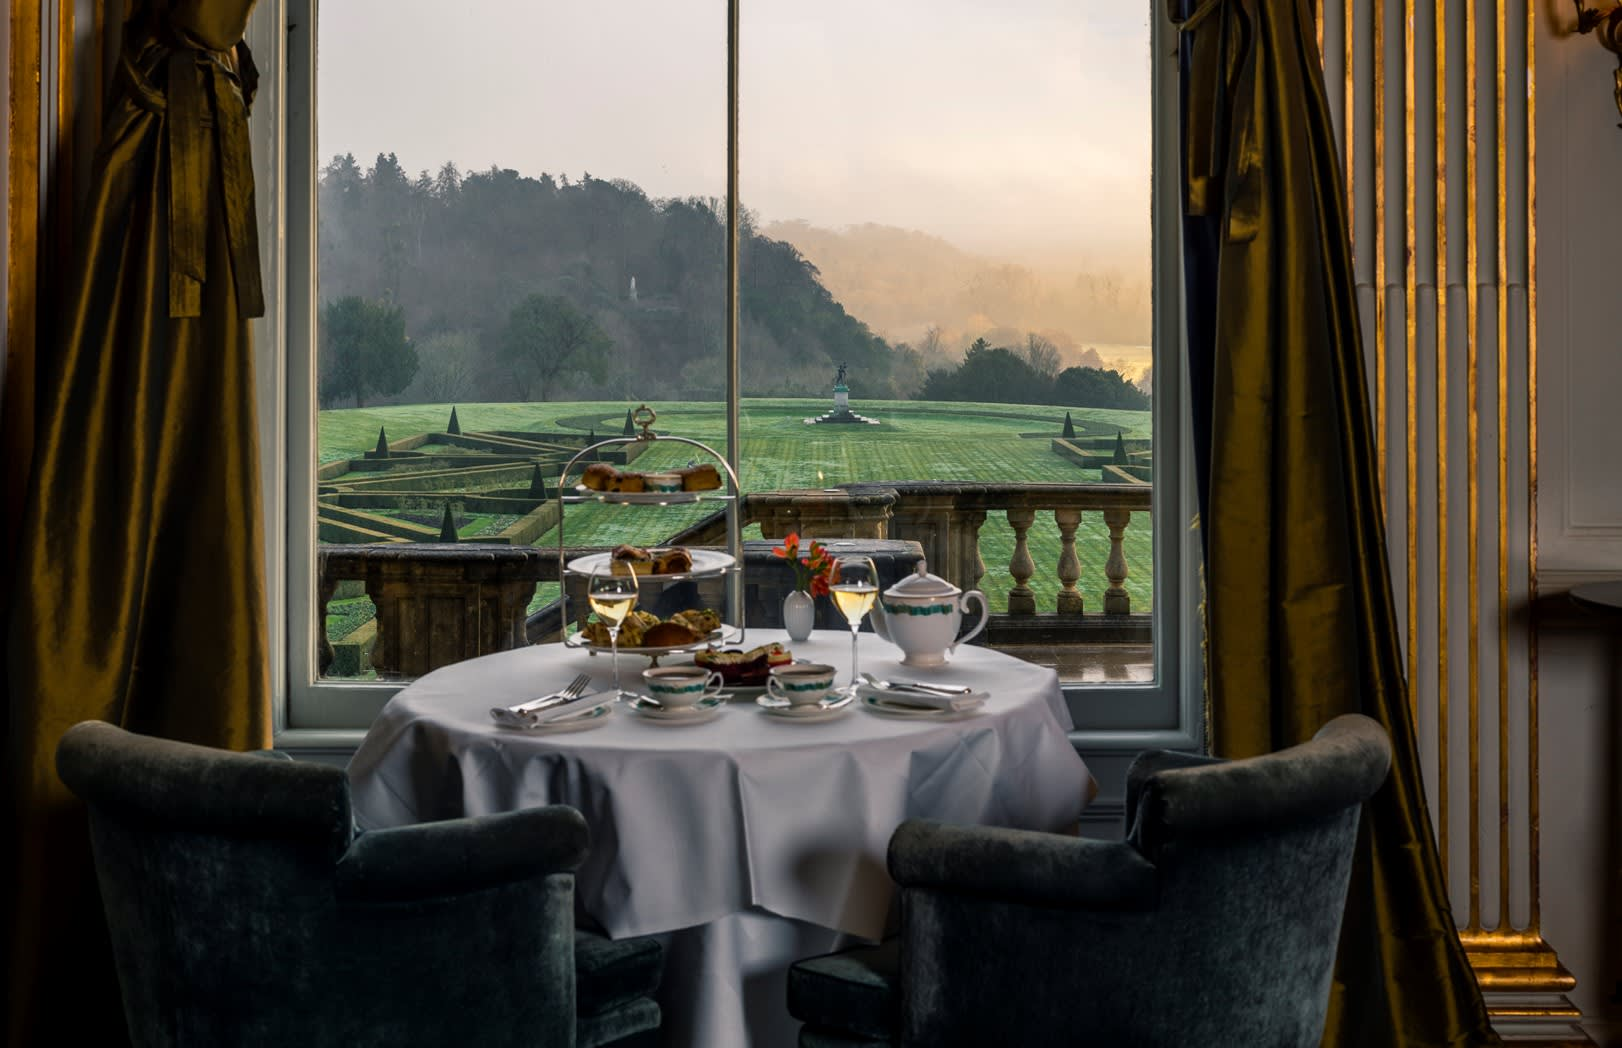 Afternoon Tea at Cliveden House Window